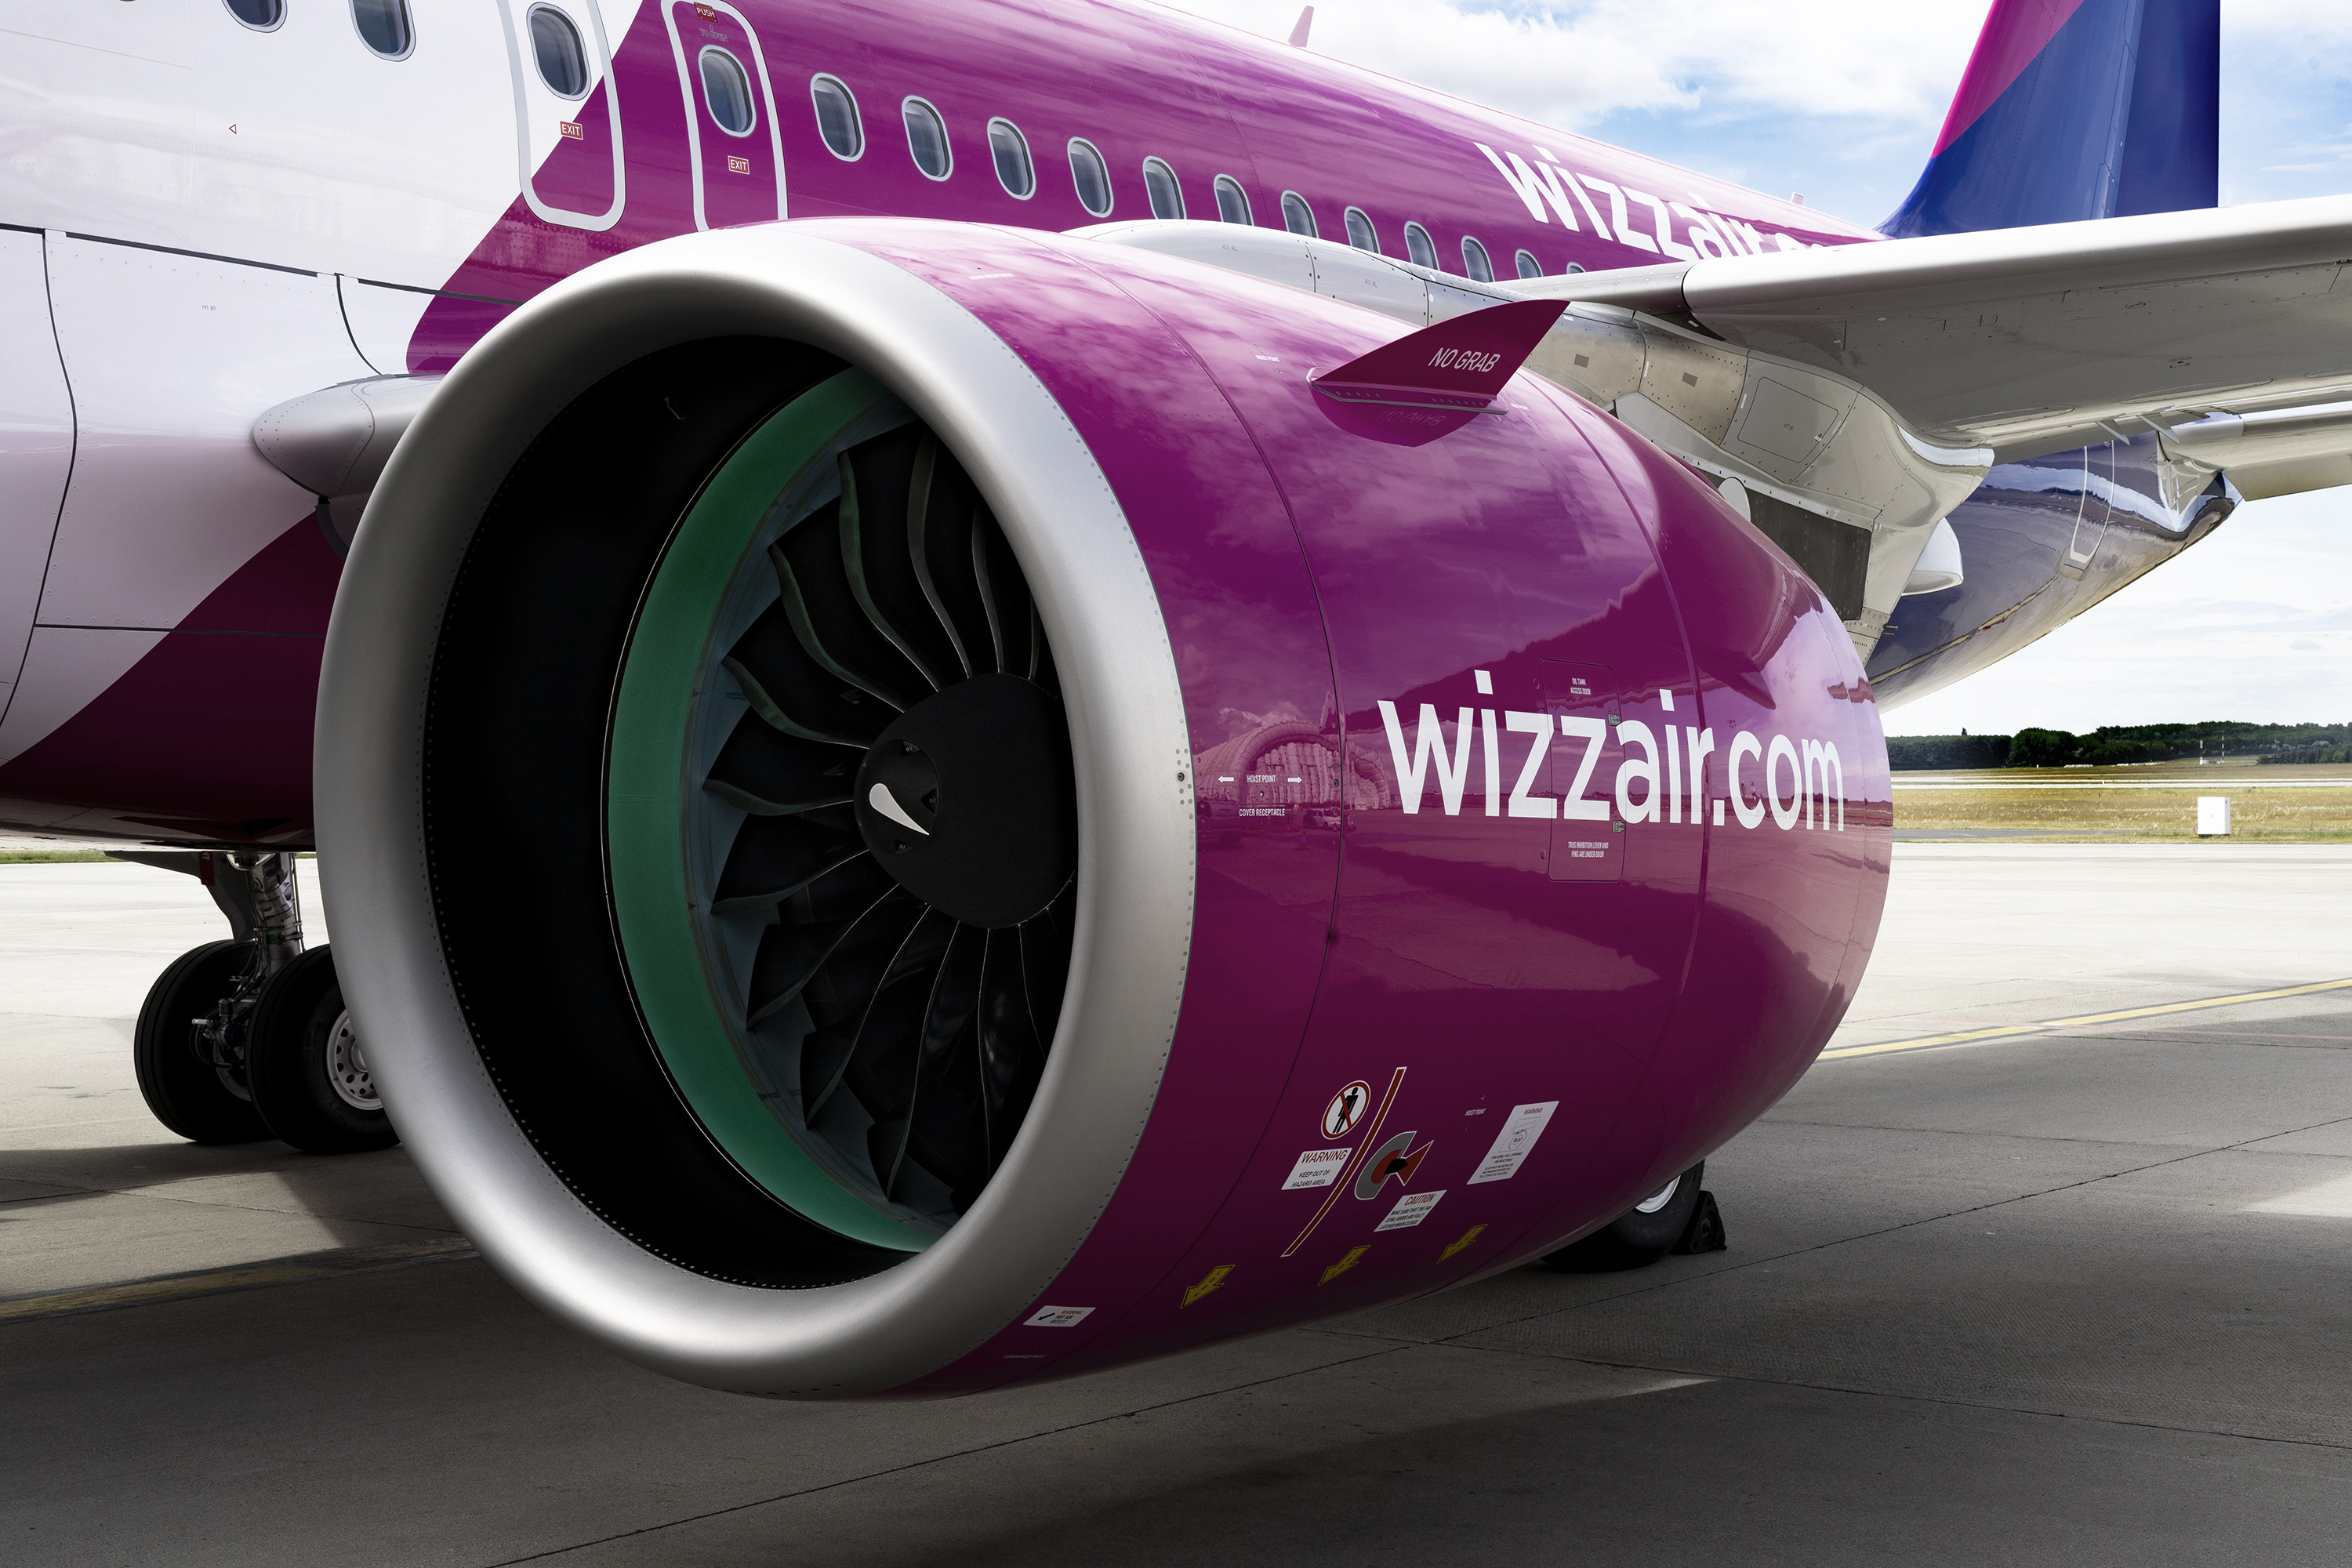 Wizz Air develops new fuel saving initiatives to reduce emissions